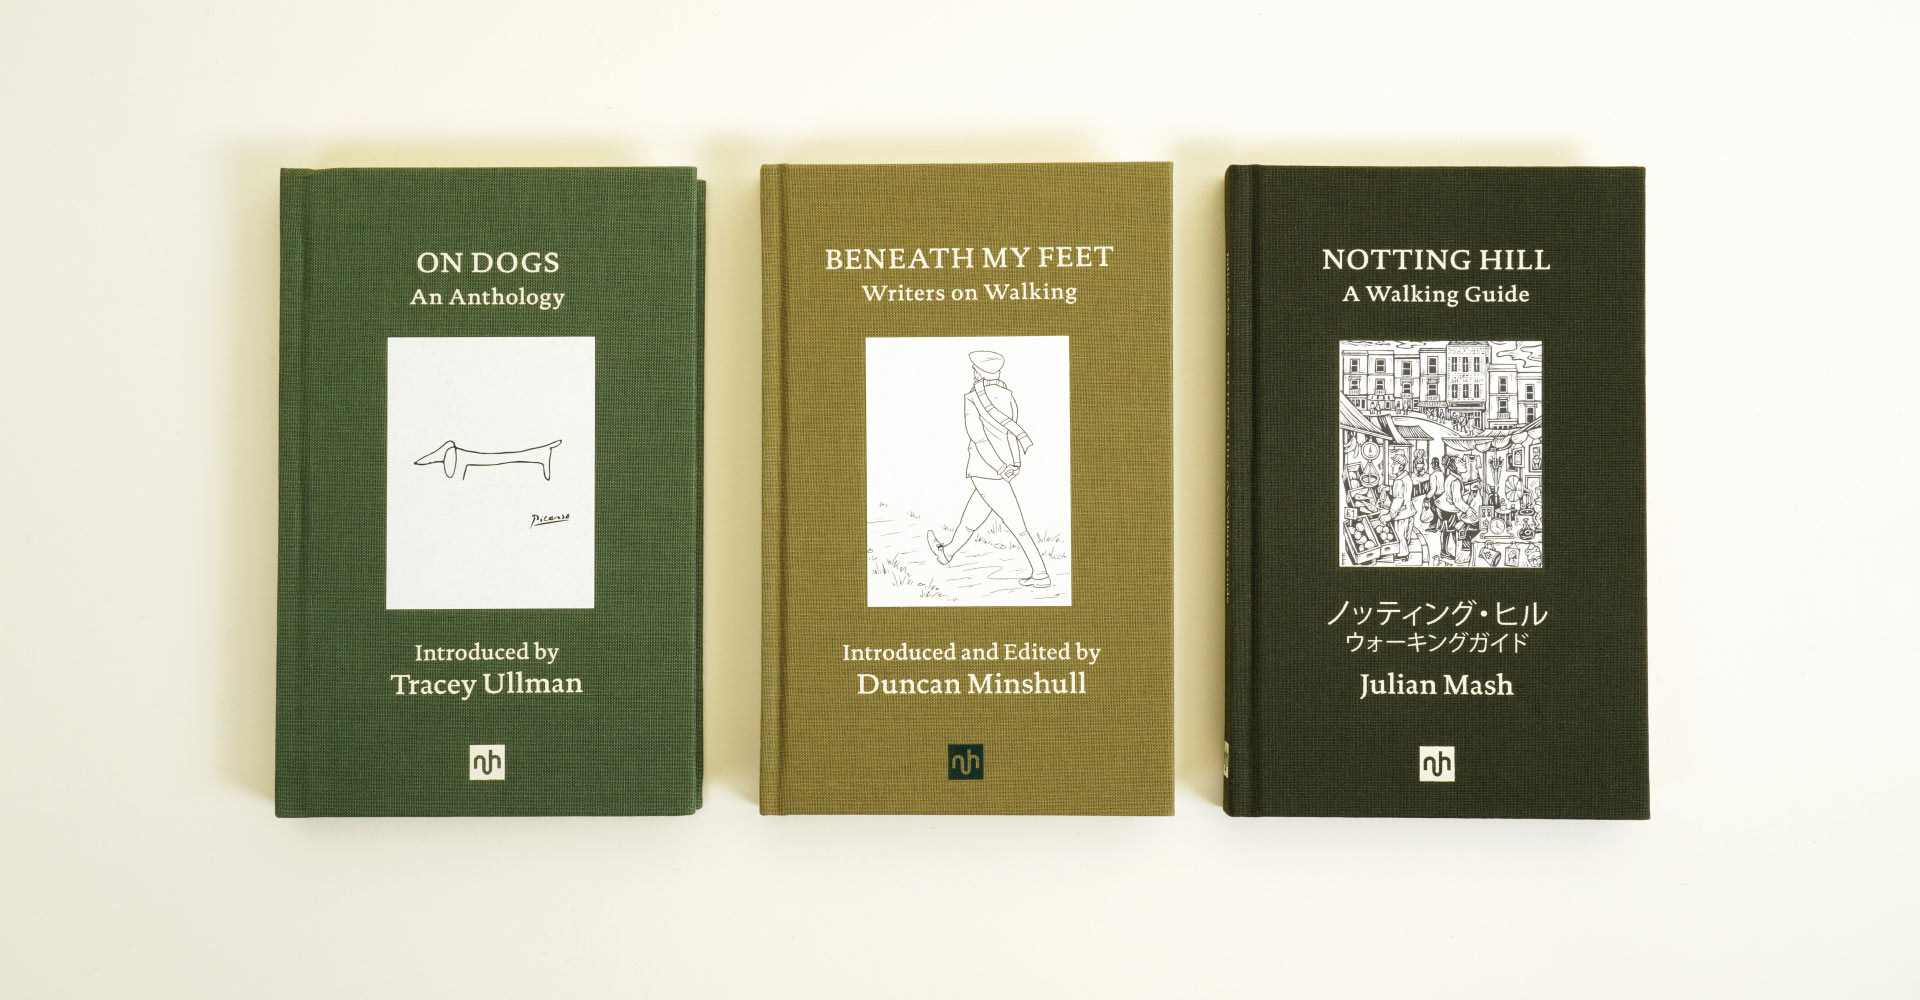 Notting Hill Editions illustrated covers